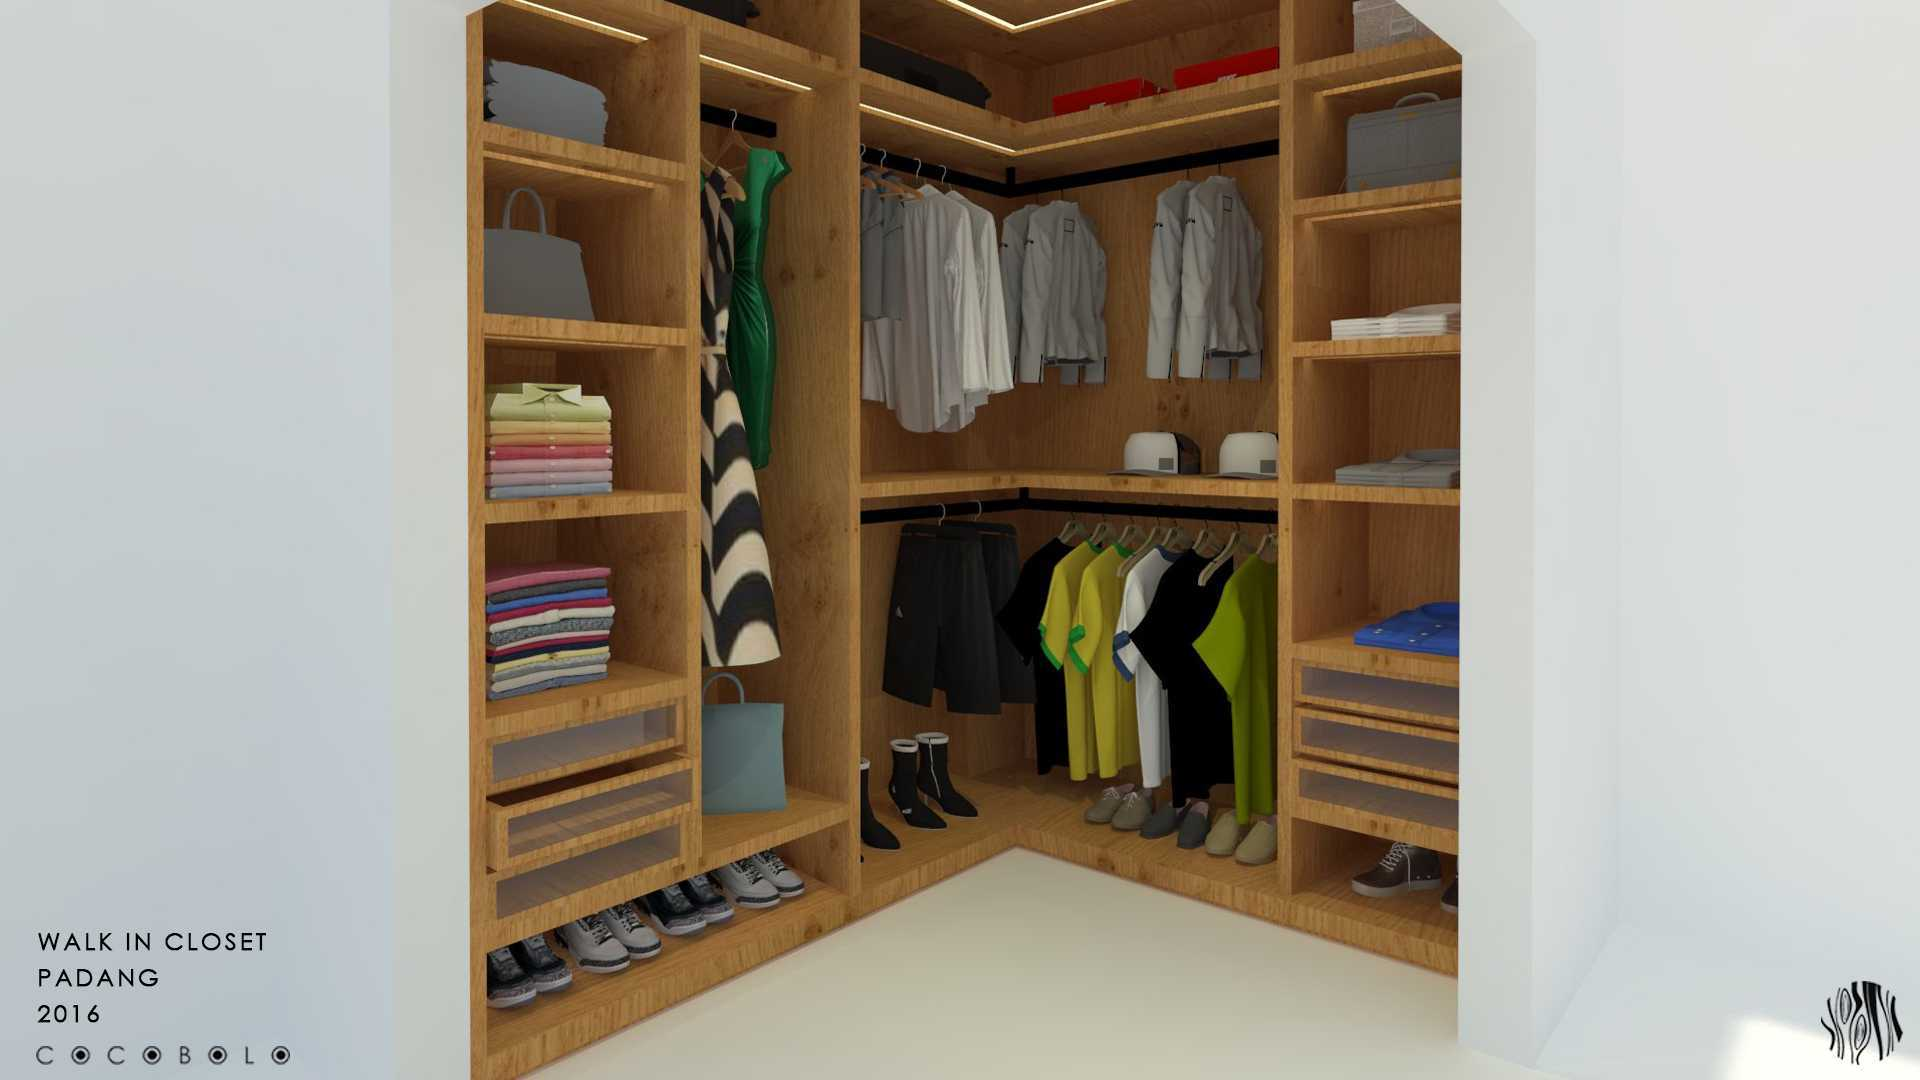 Cocobolo Studio D House Padang, Indonesia Padang, Indonesia Closet Minimalis,modern  18267